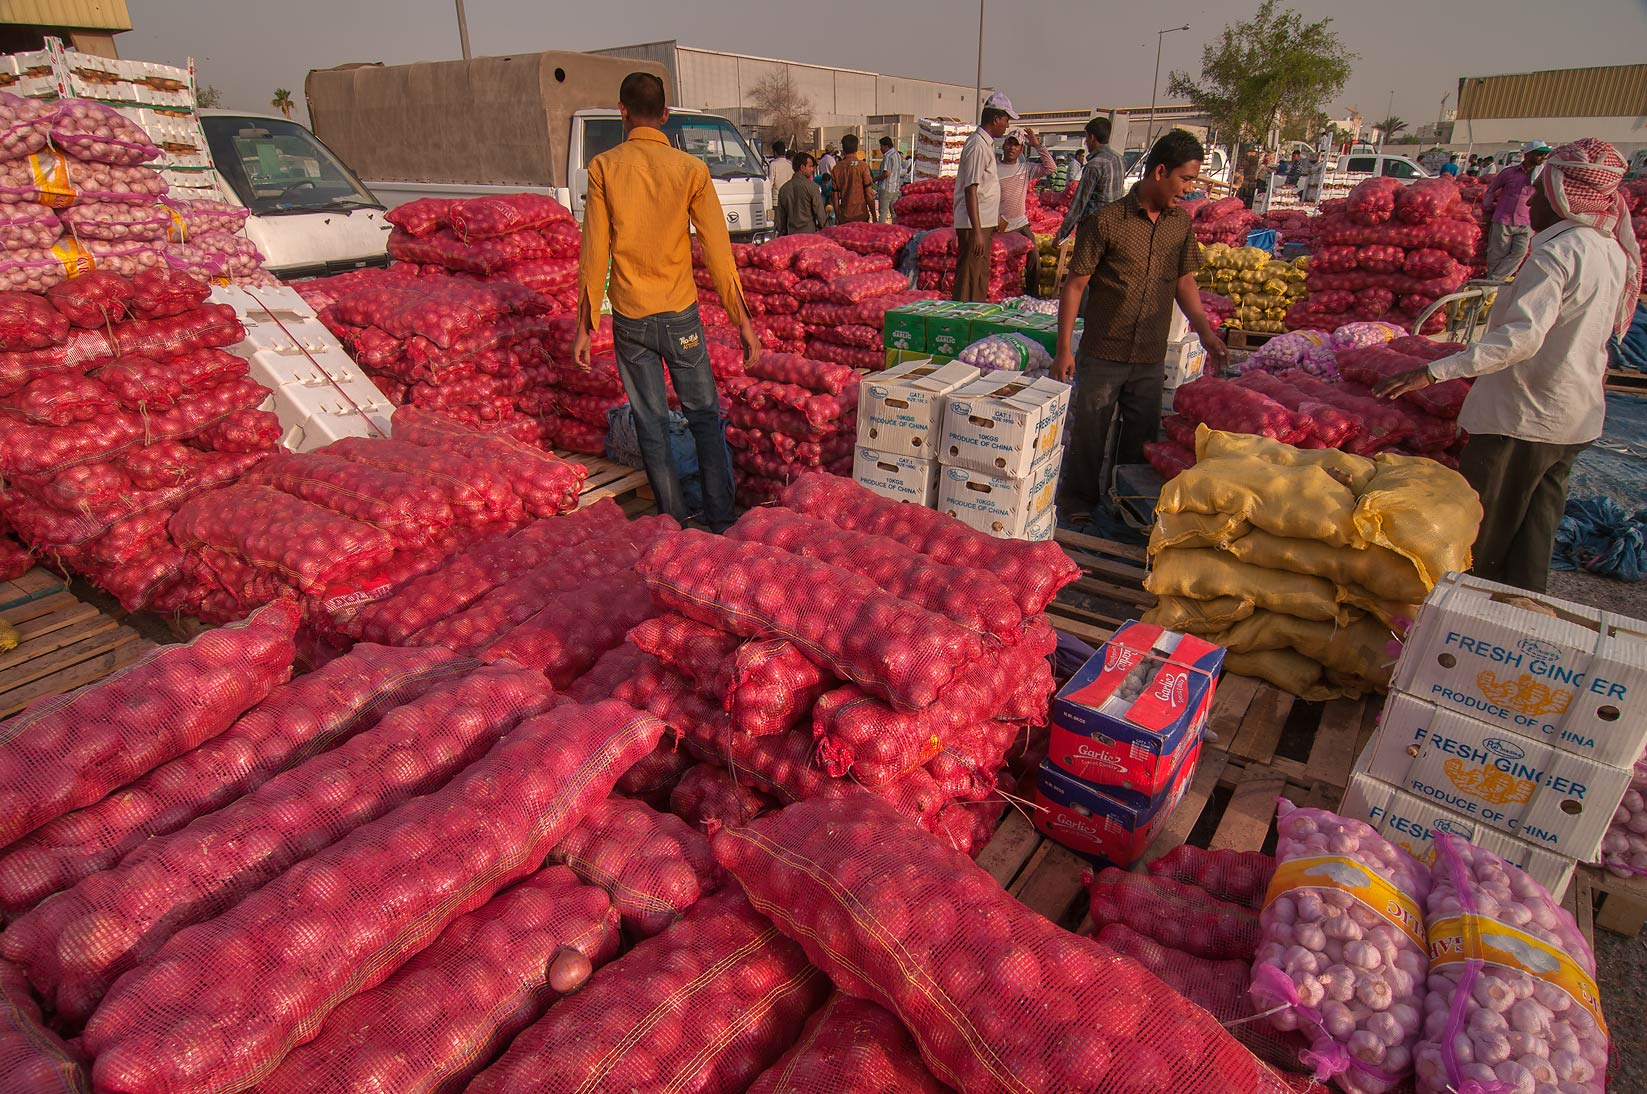 Storage area of Wholesale Vegetable Market in Abu Hamour. Doha, Qatar